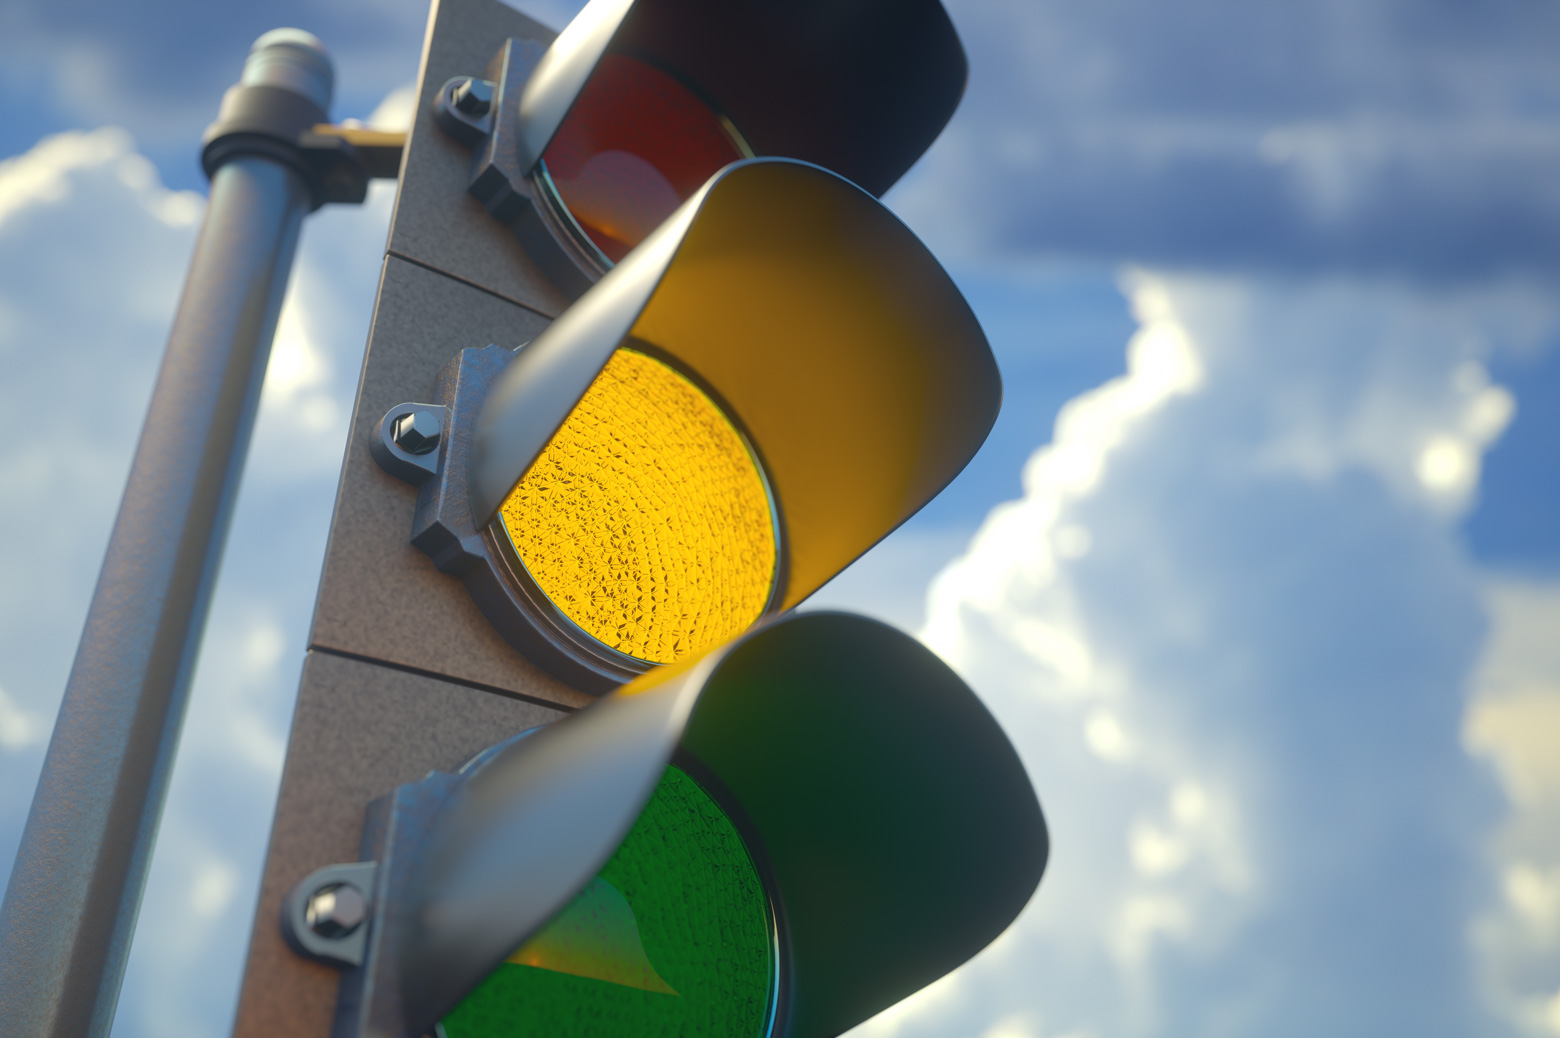 Close up of a traffic light